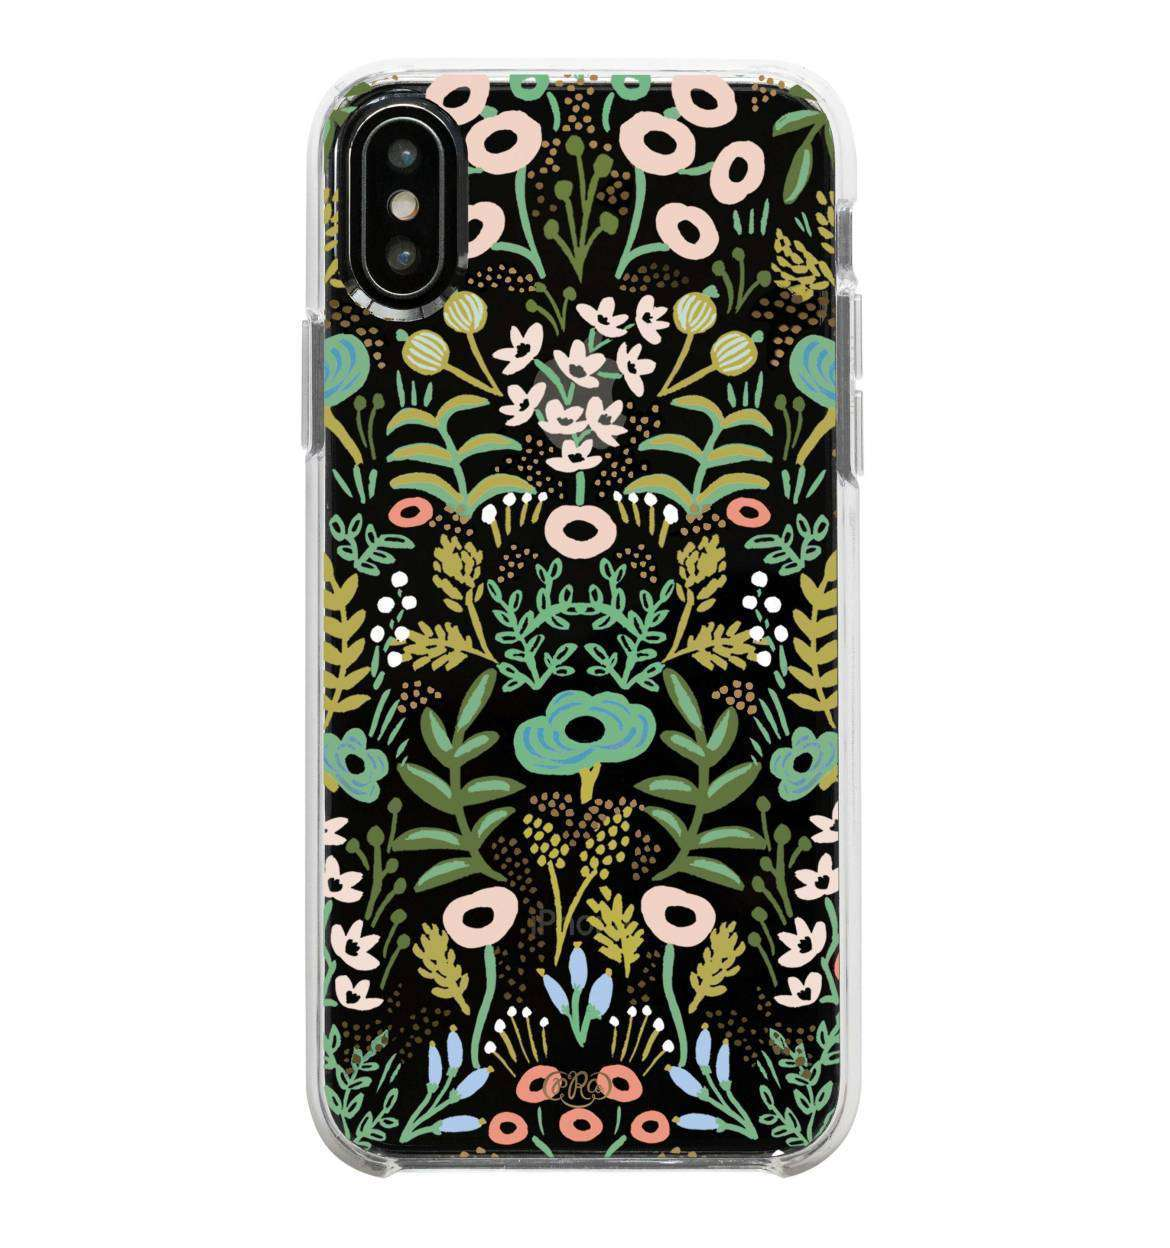 Modest women's boho print floral pink green mint gold iPhone cover